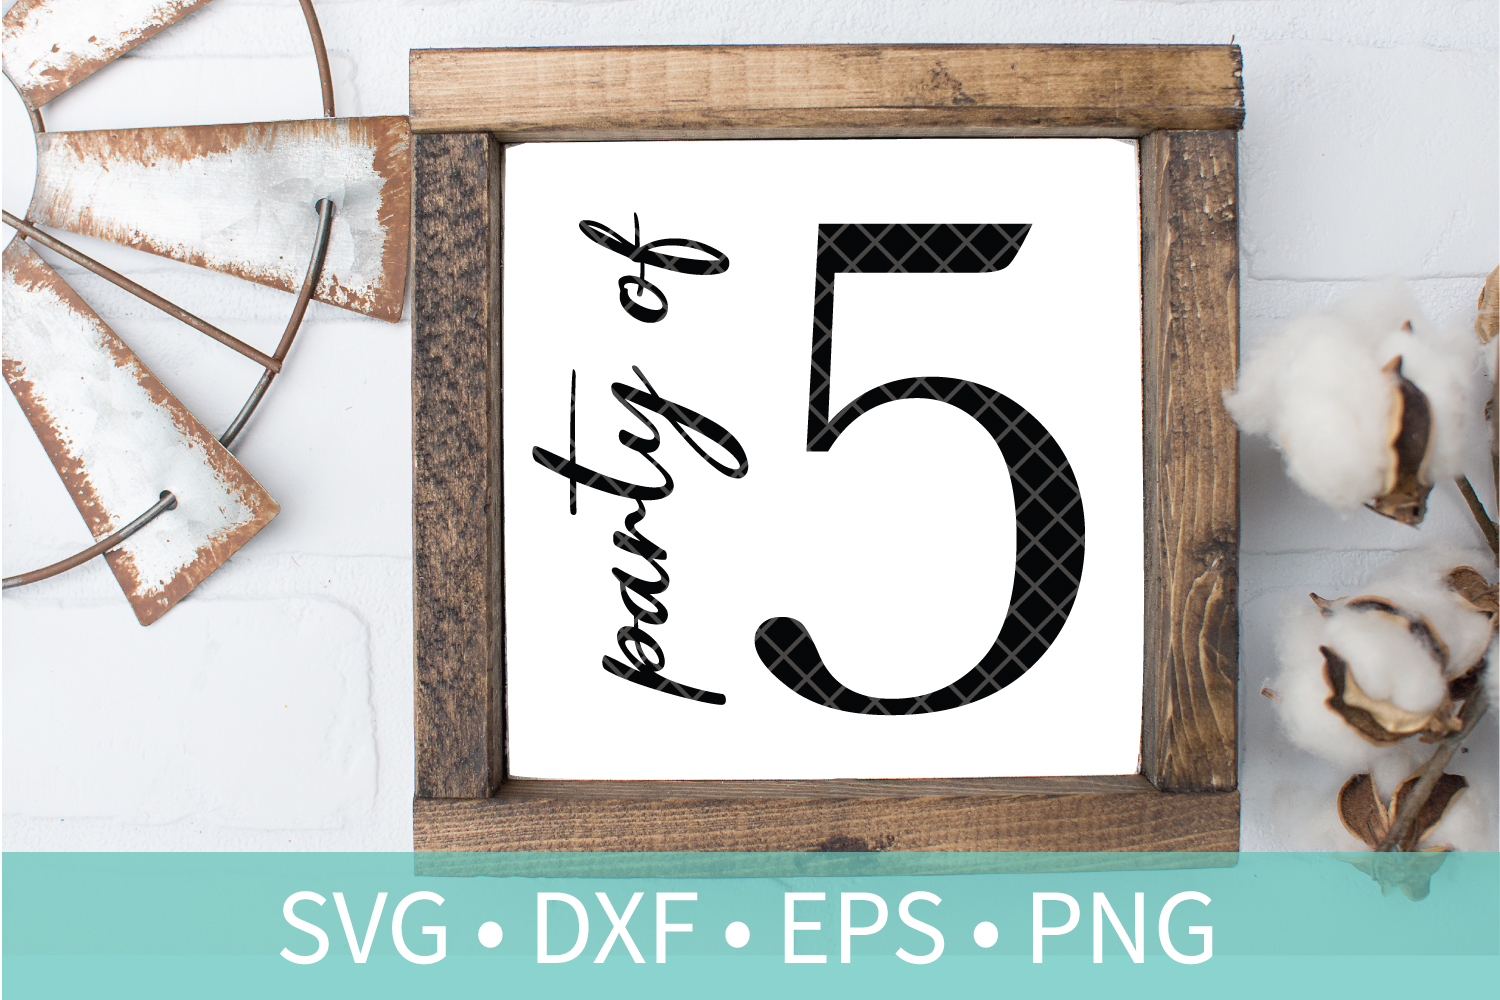 Party of Family Sign SVG DXF EPS PNG Clipart Cut File example image 2